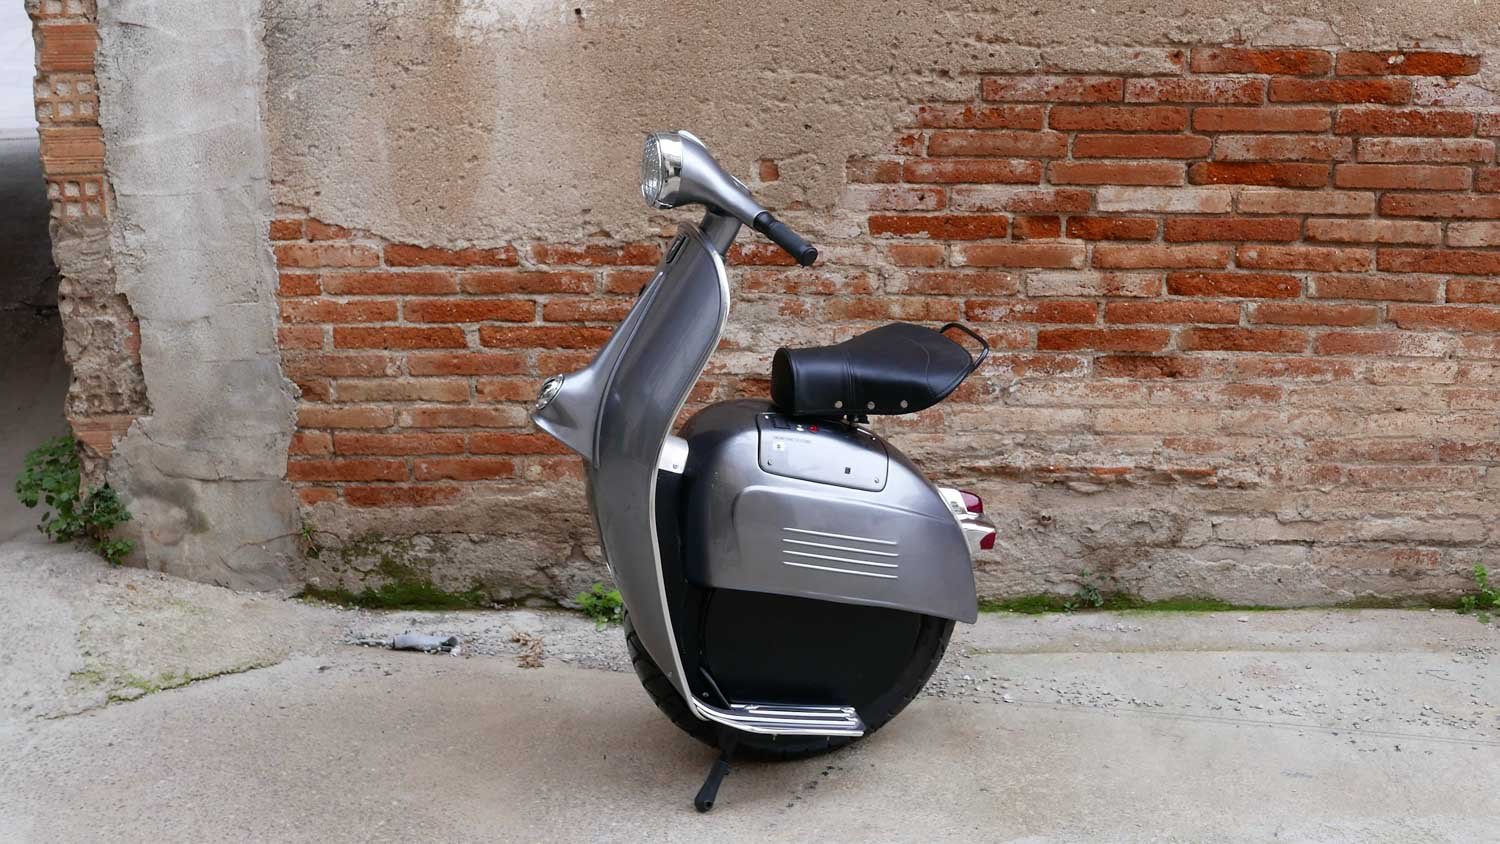 Image result for monowheel scooter